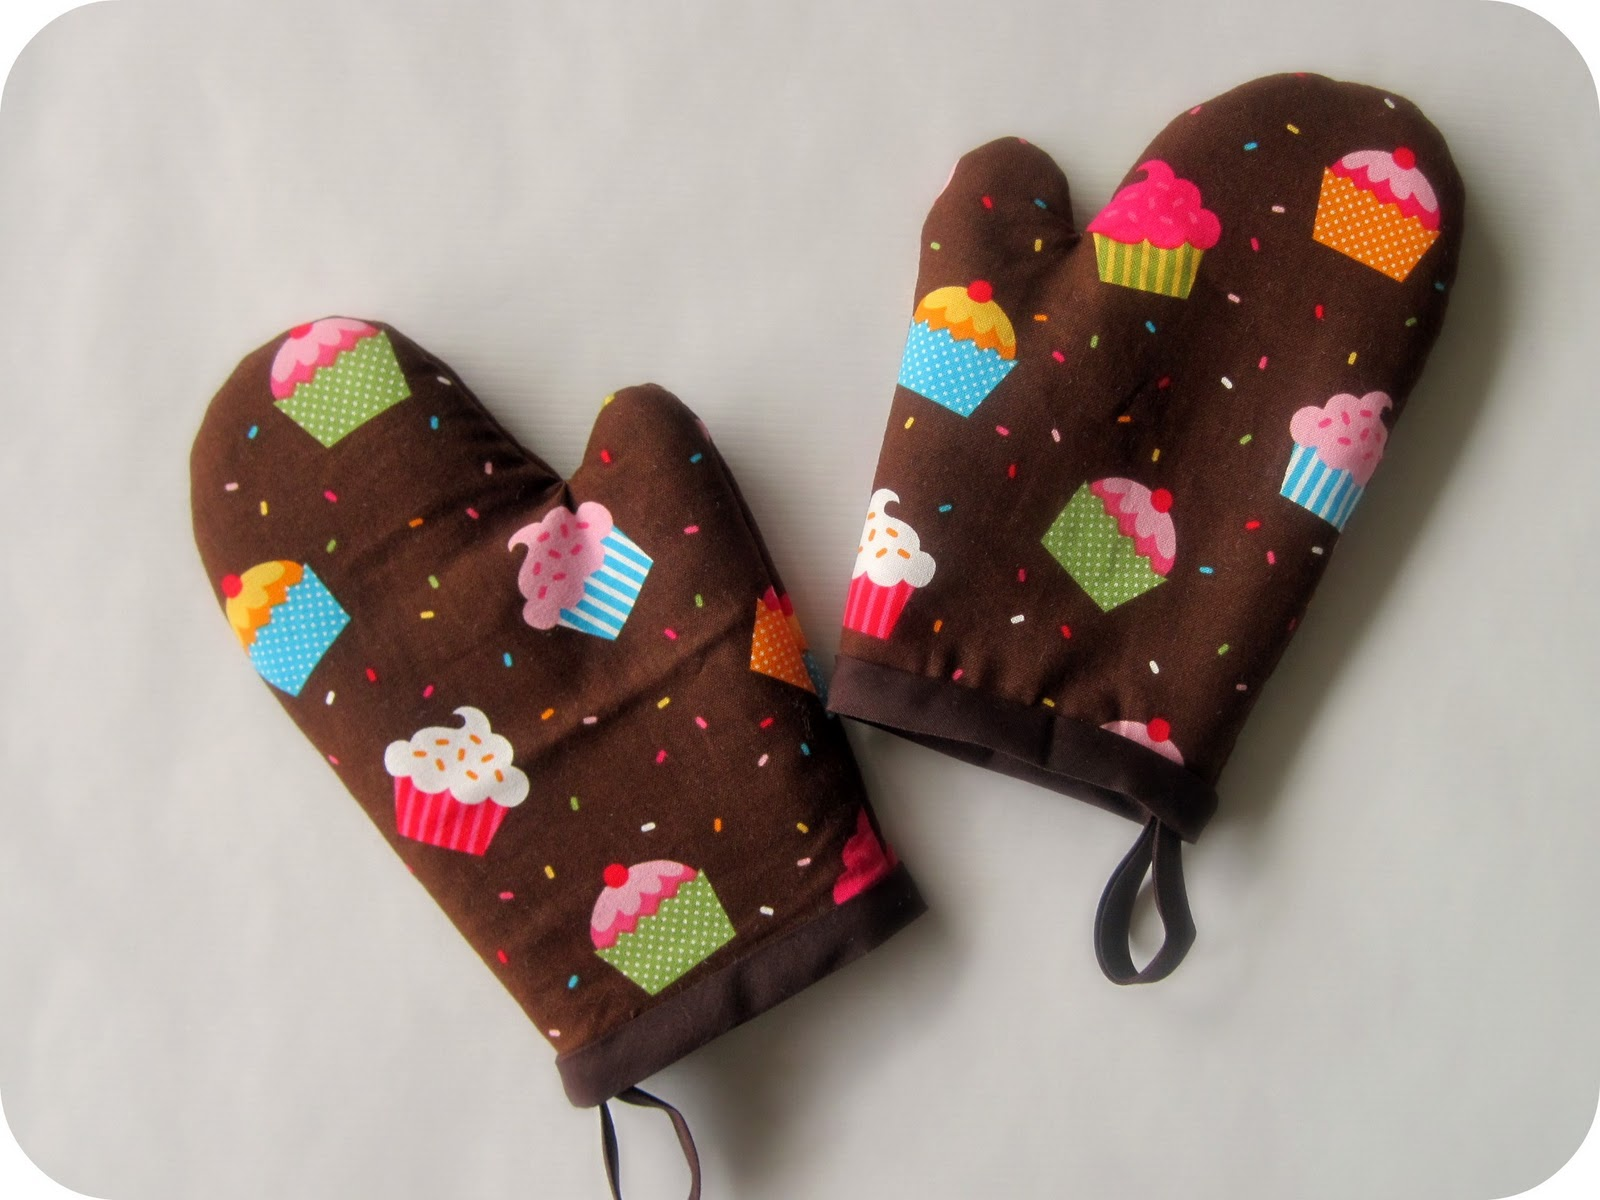 diy project: sew bettie oven mitt | Design*Sponge